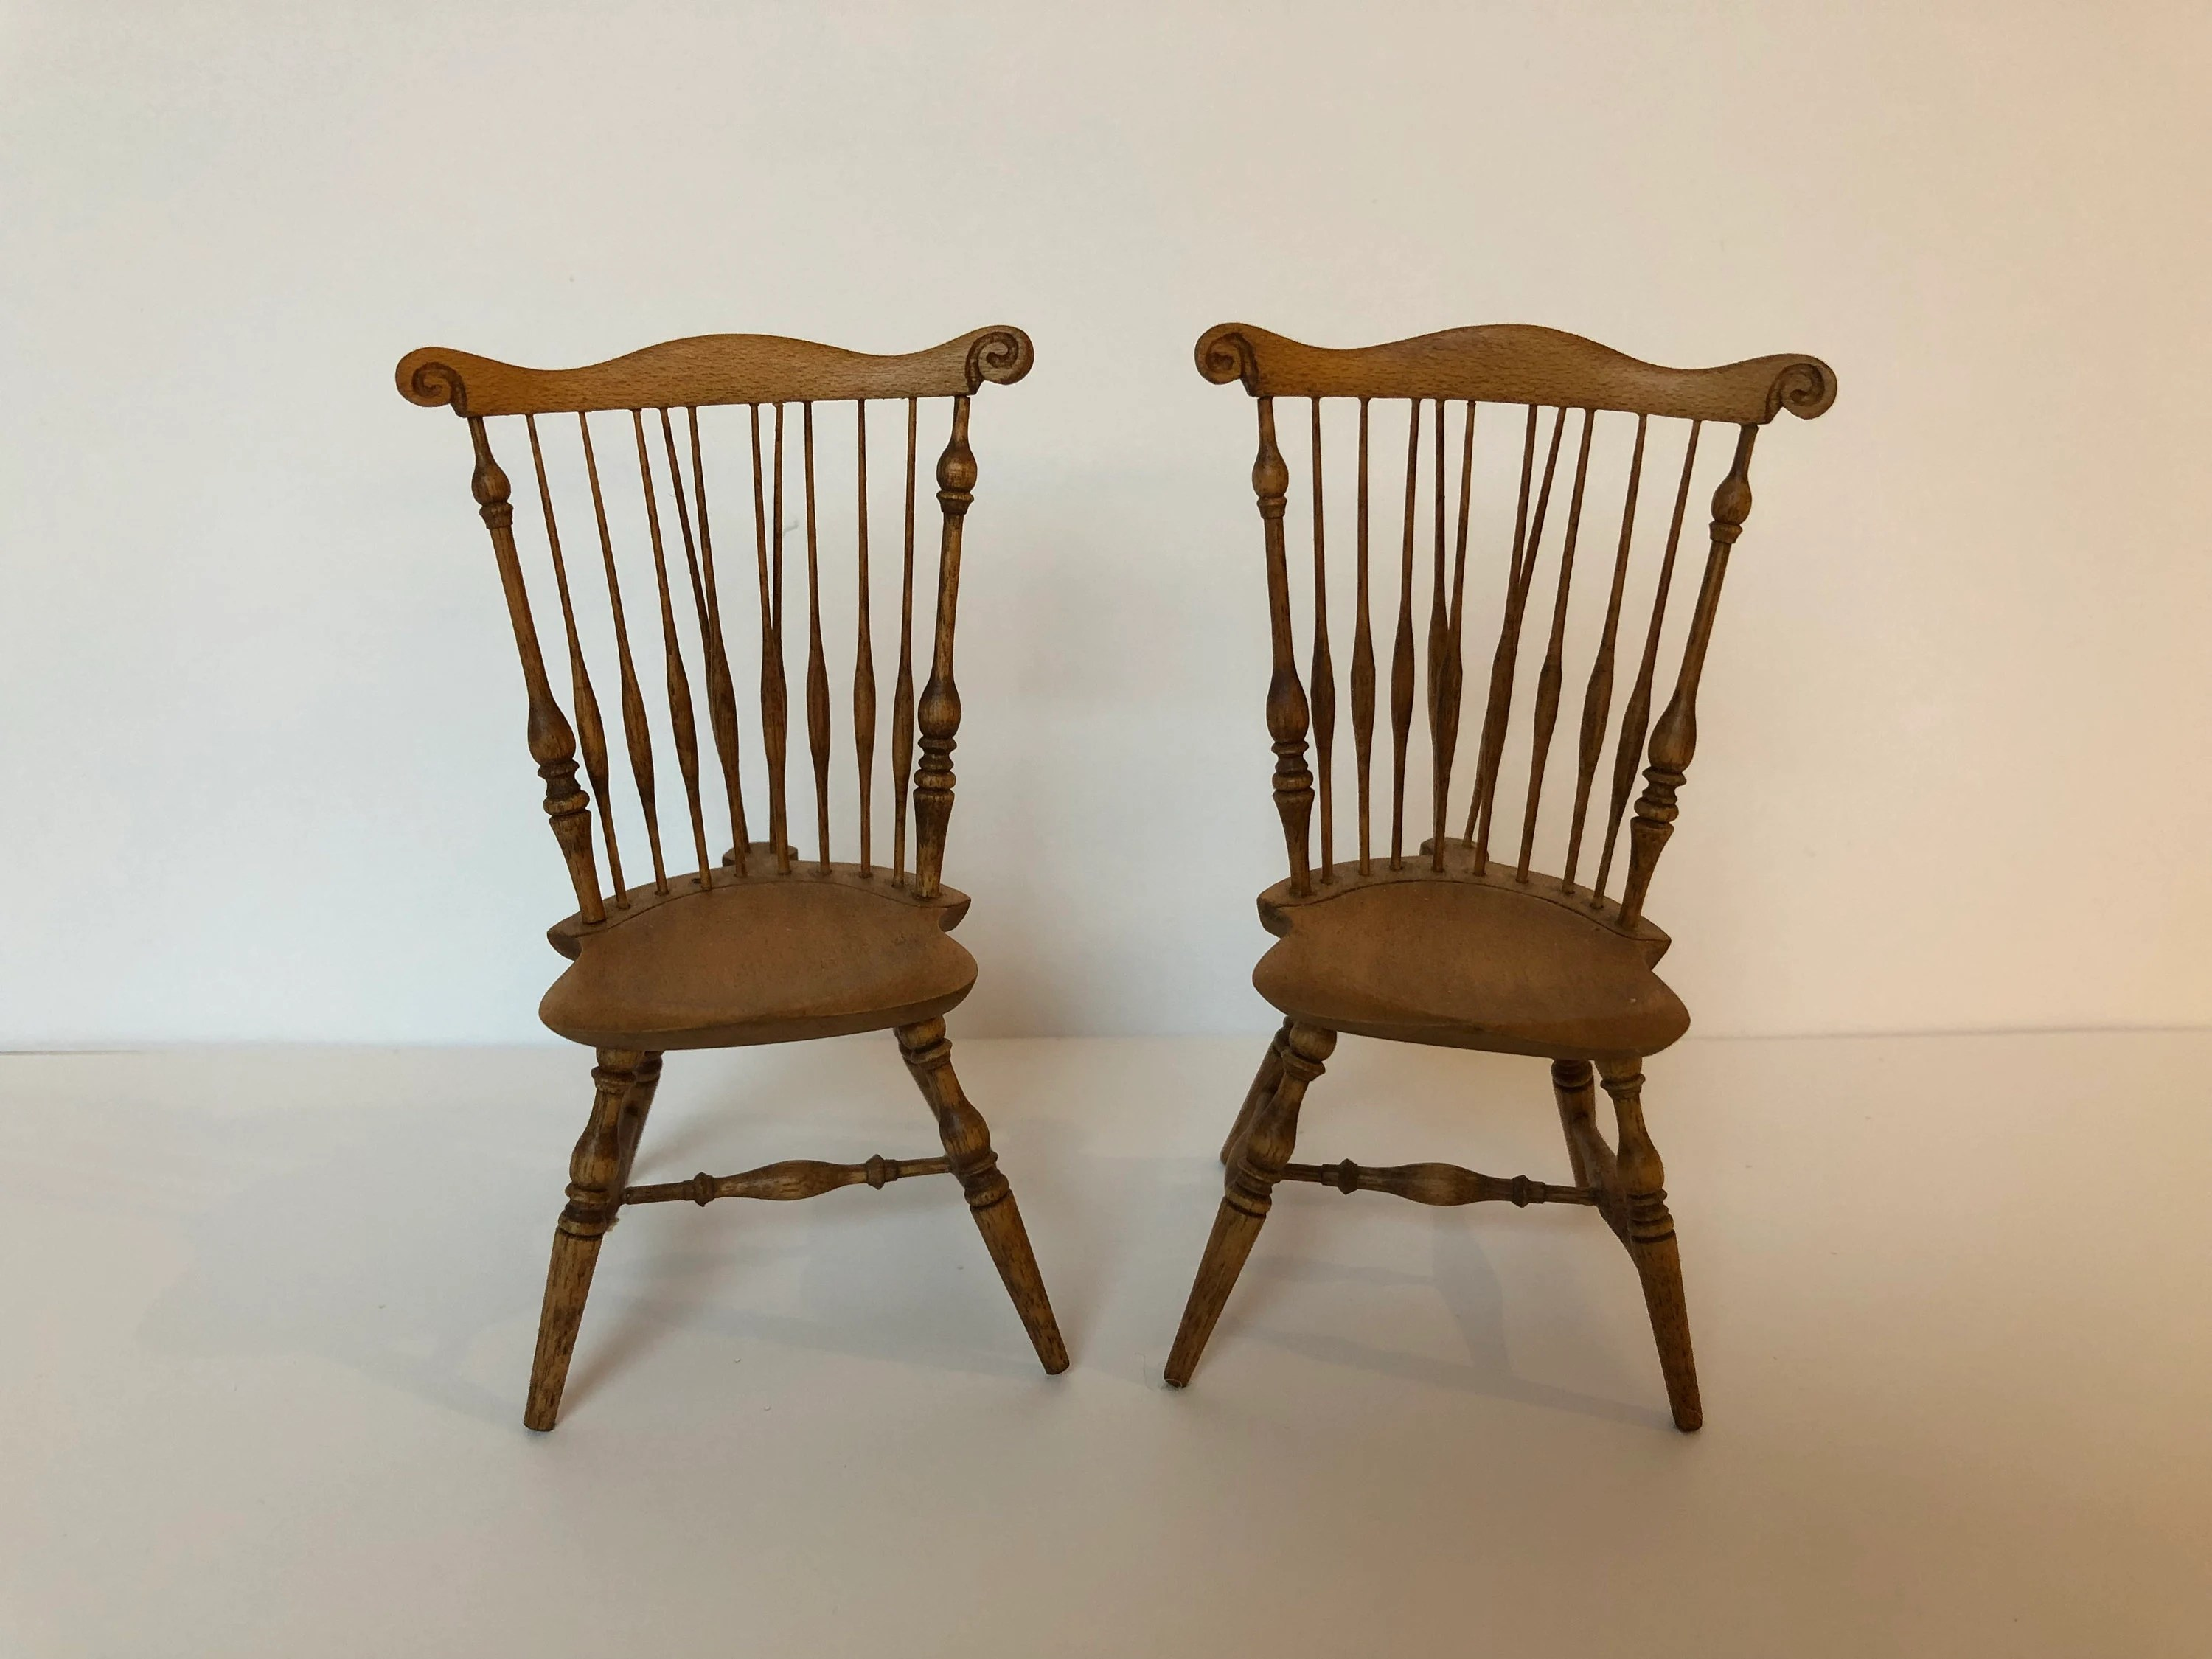 antique windsor chairs used banquet etsy pair of miniature braceback